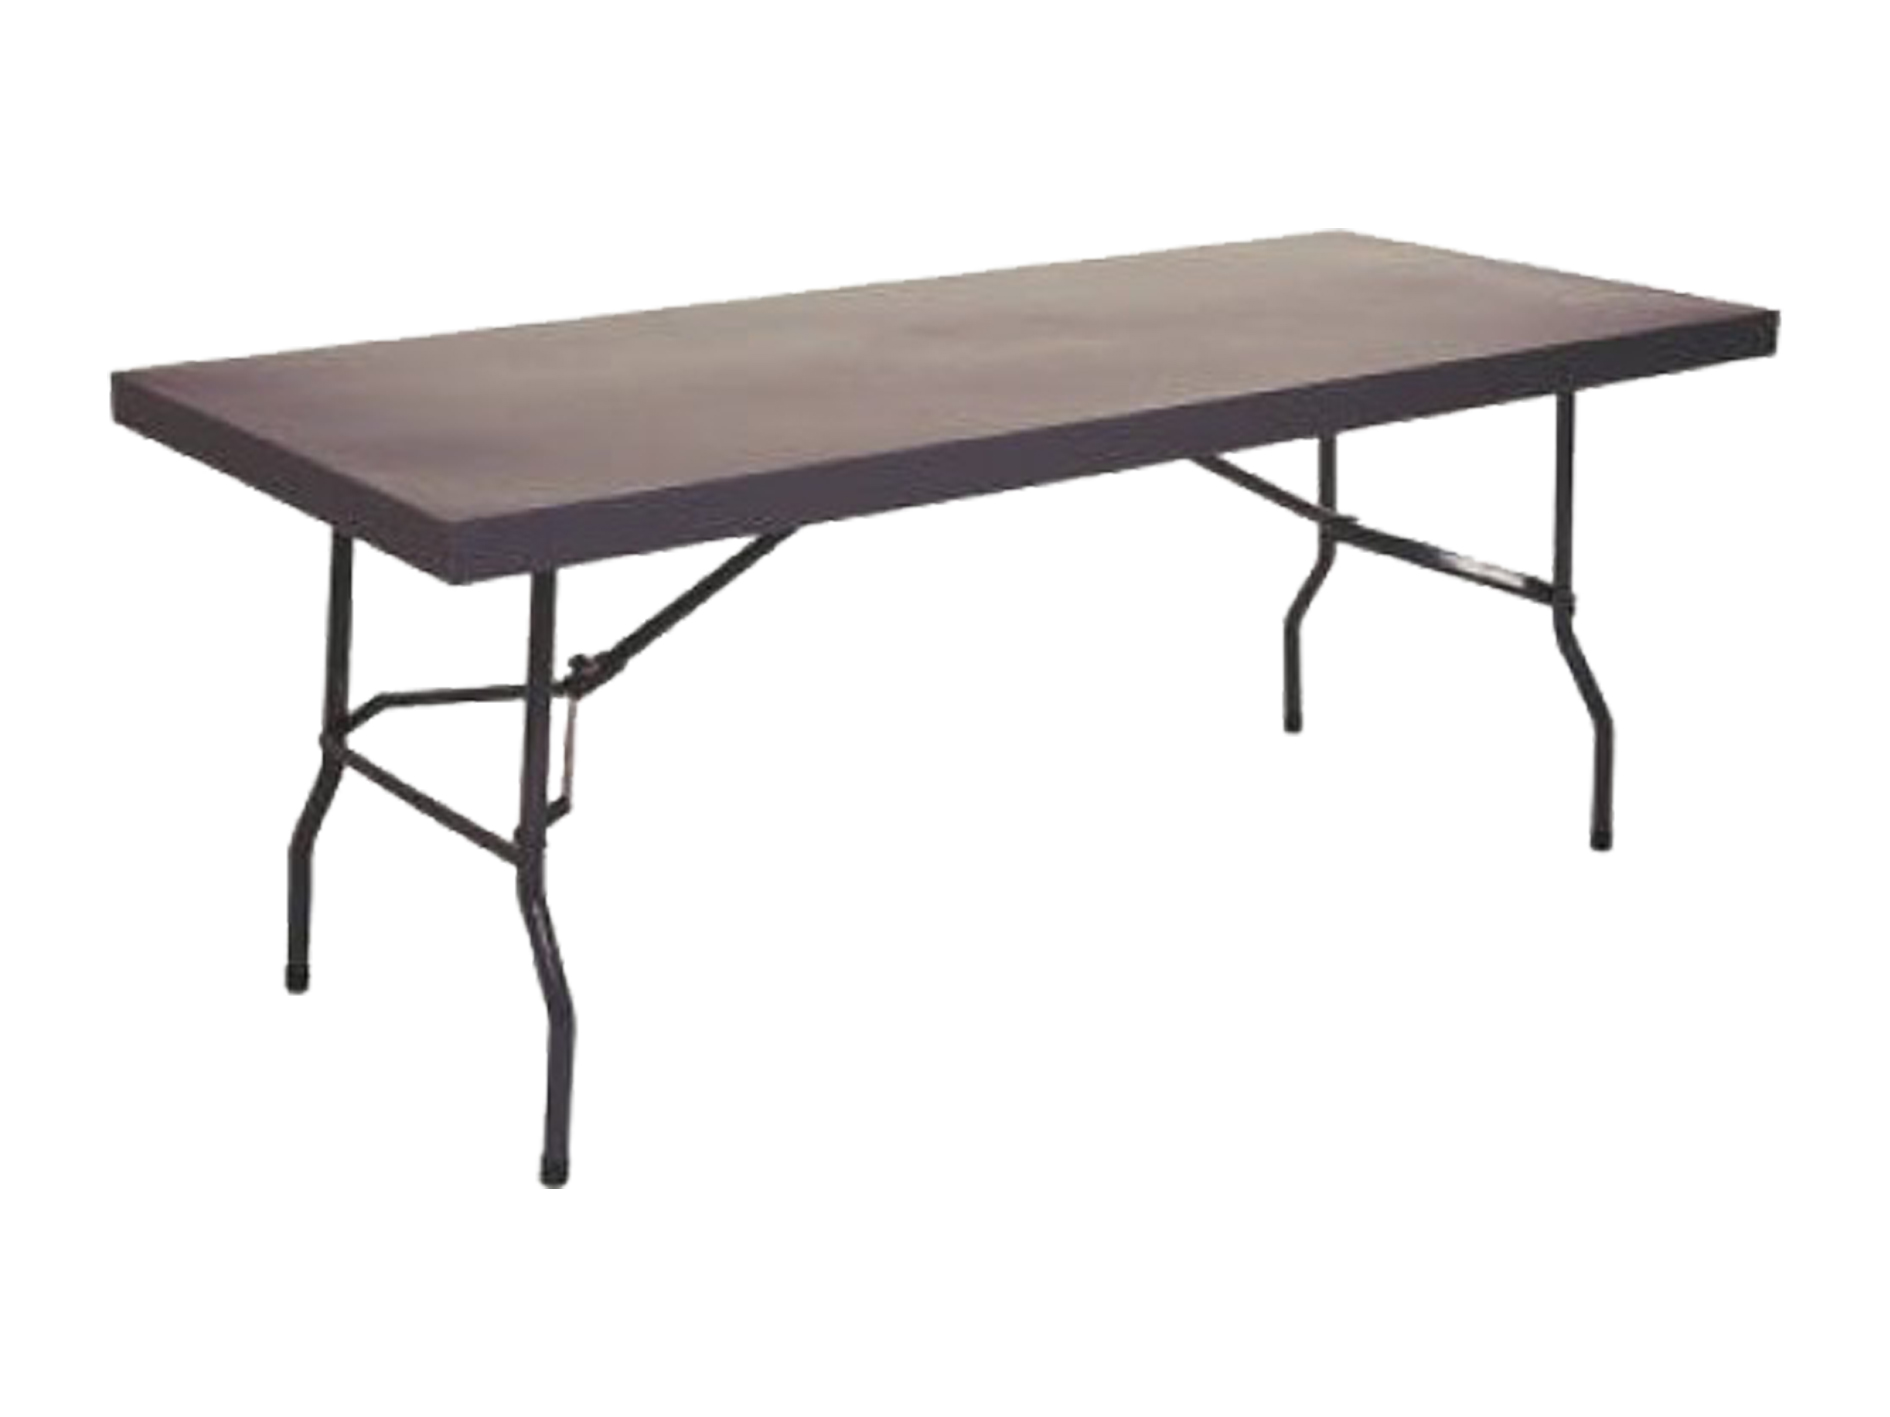 Round Folding Tables Walmart | Costco Folding Tables | 4 X 8 Folding Table